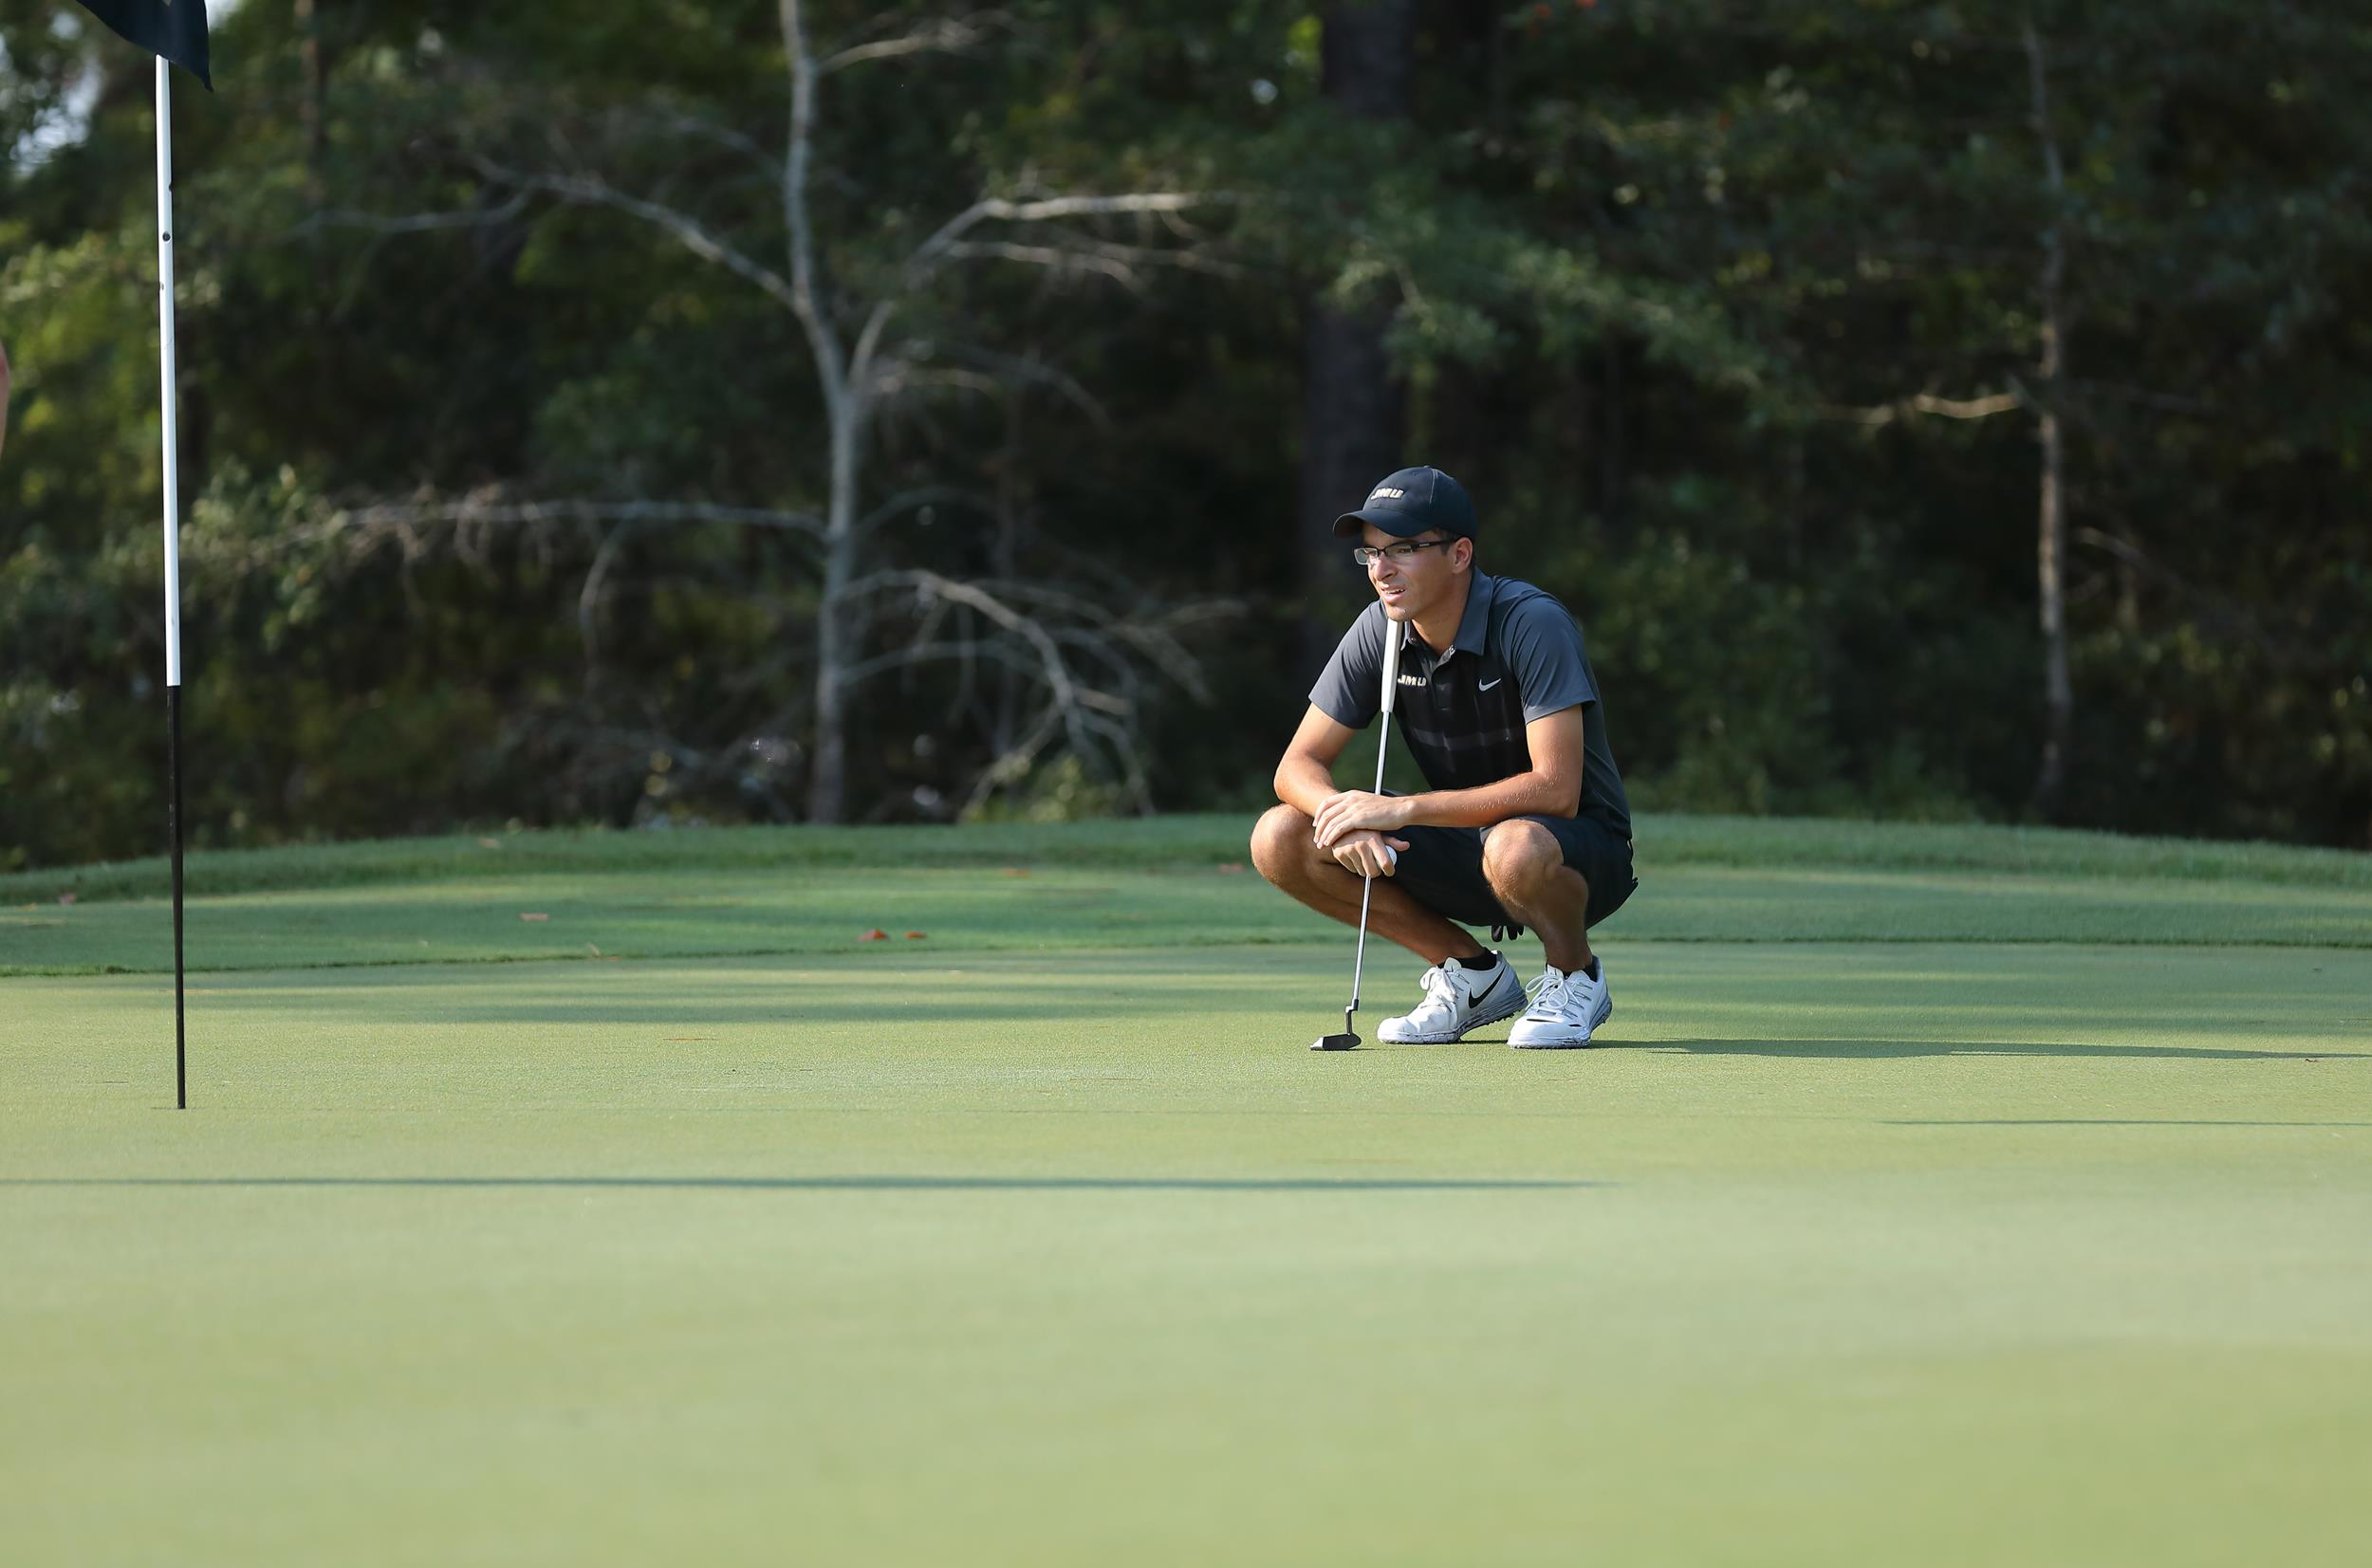 Men's Golf: Cole Named First Team All-State